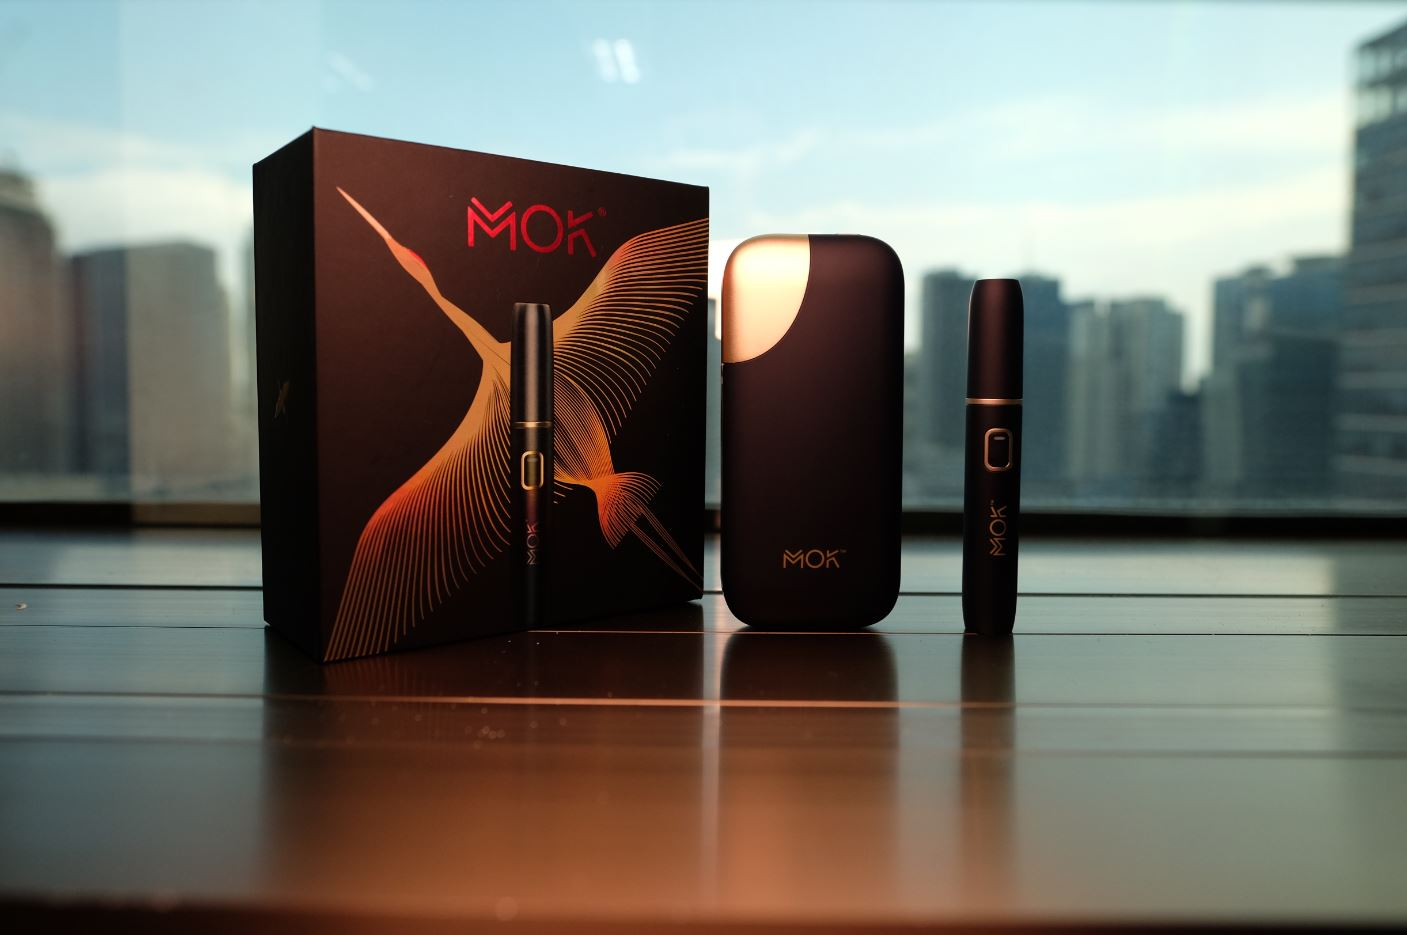 Enjoy the new Heat-Not-Burn tobacco experience with MOK